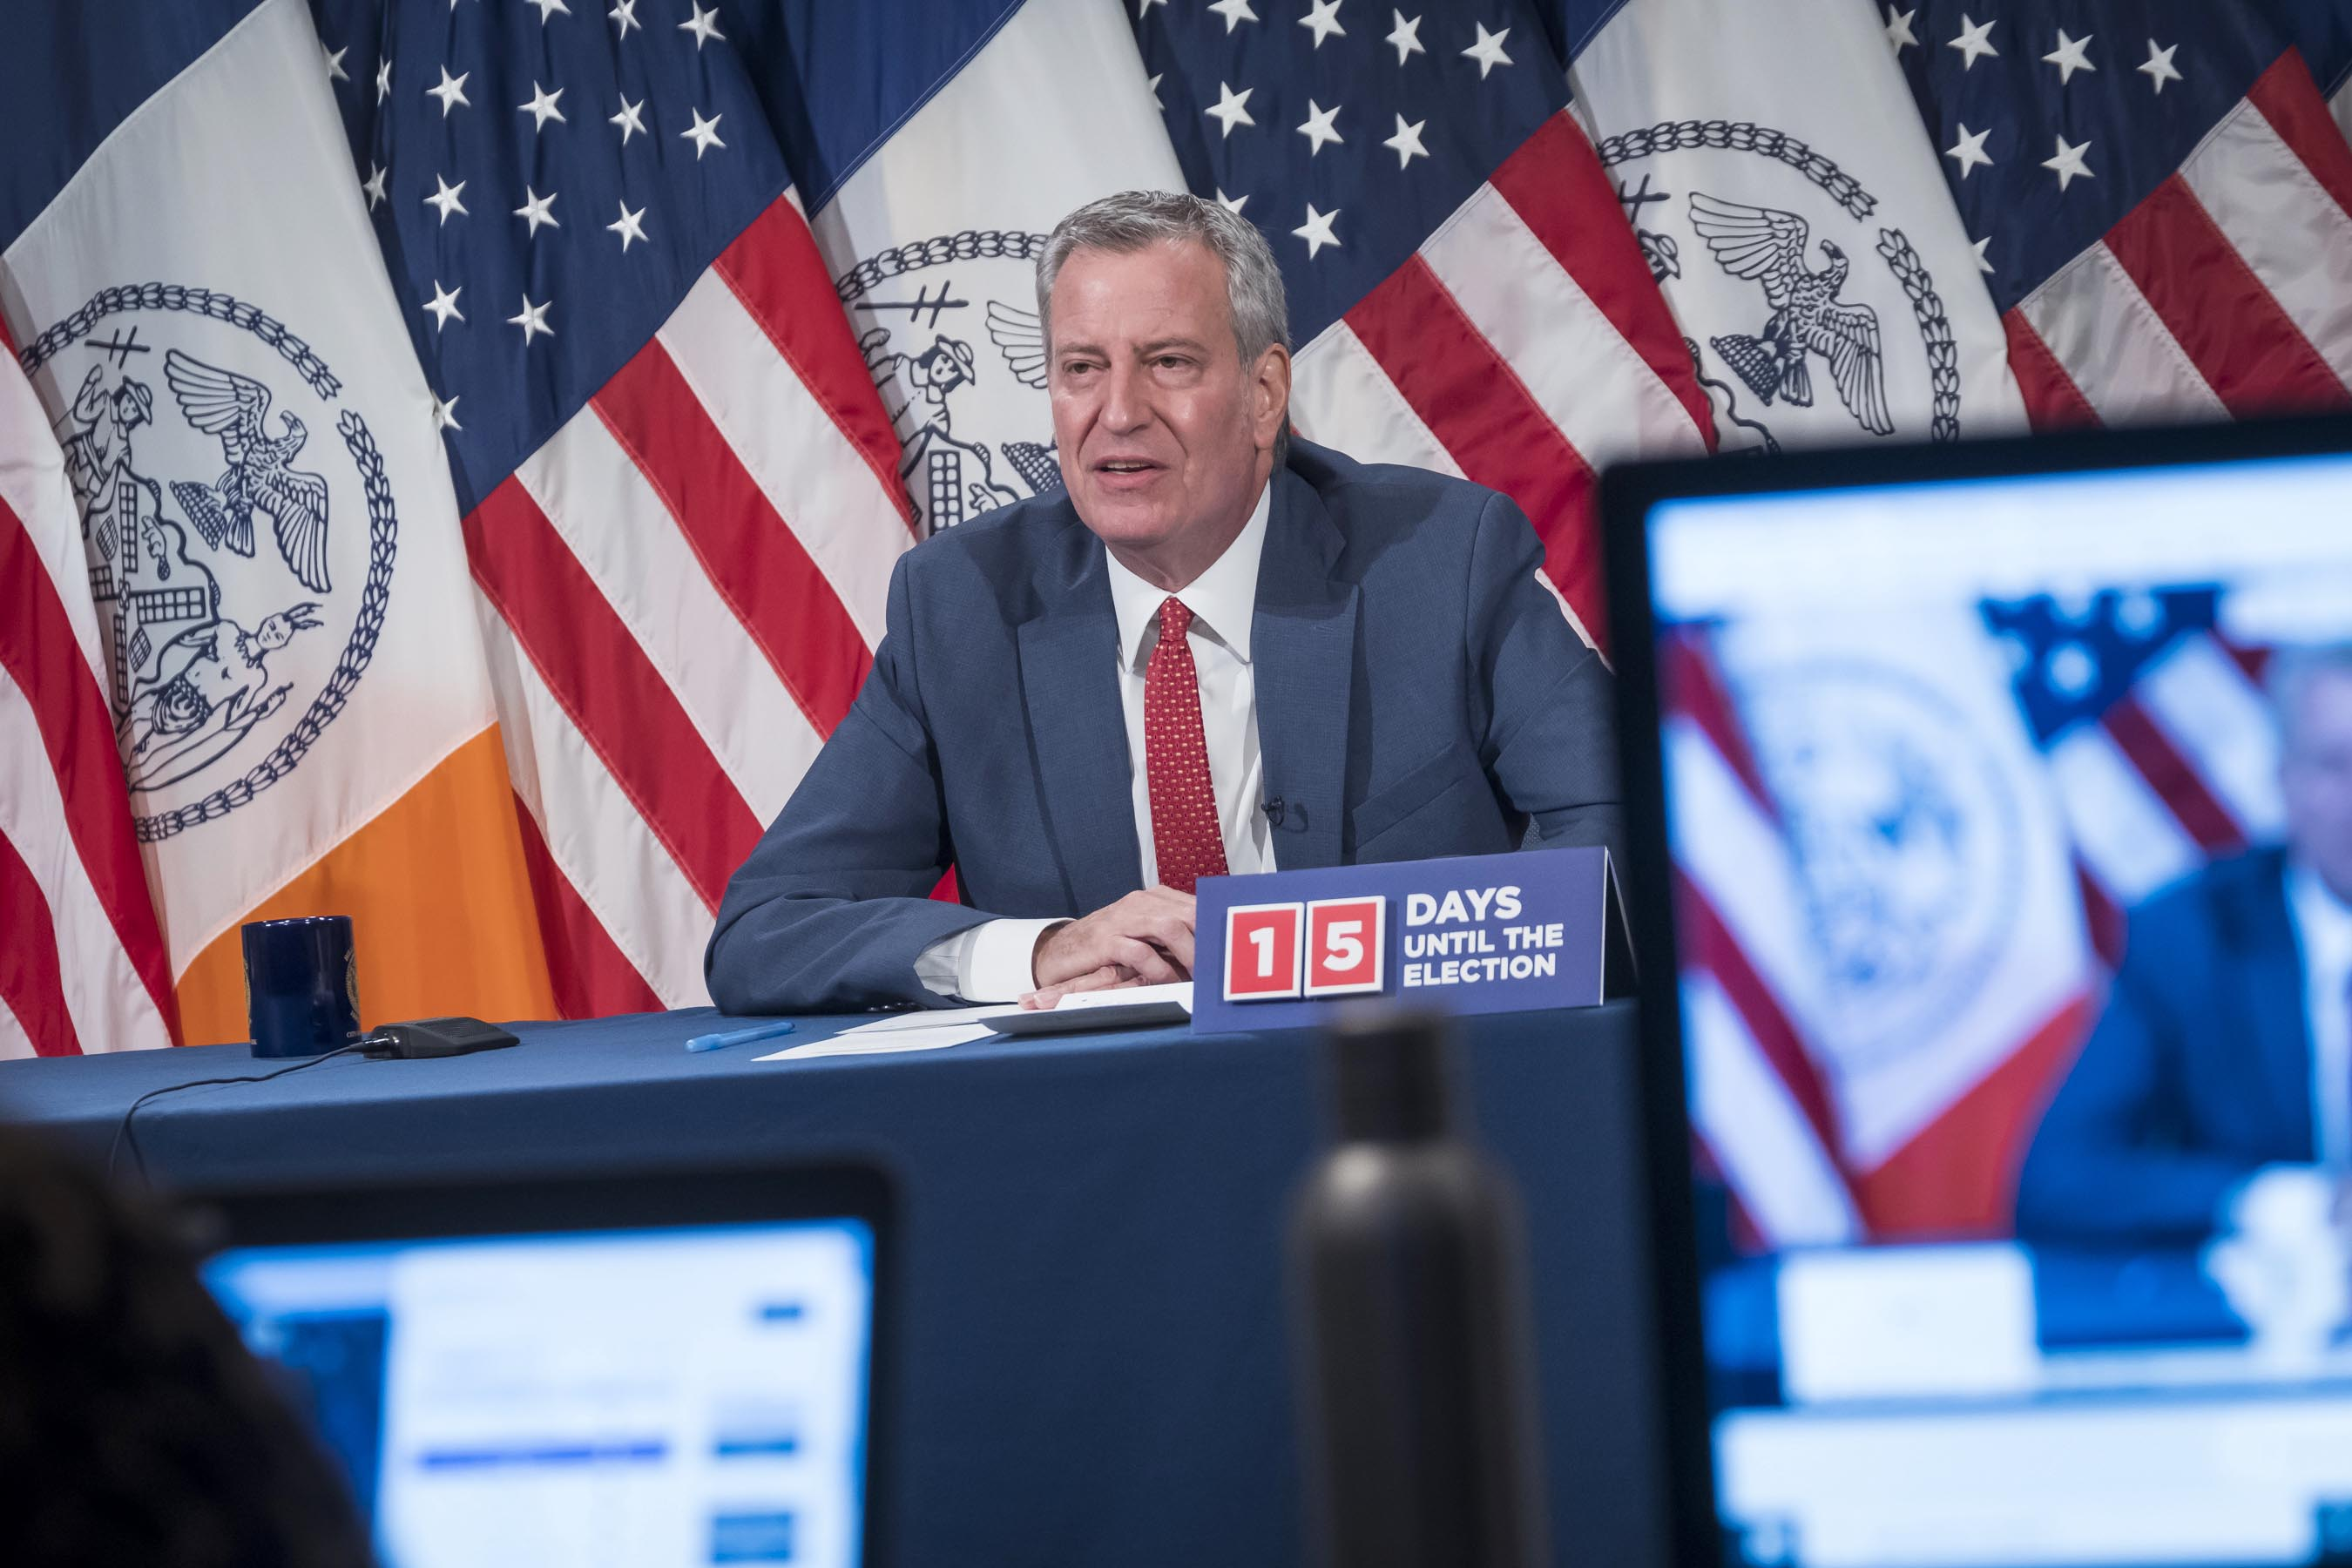 SCOOP: Mayor de Blasio meets with Jewish Community Leaders, who Recommend Increased Testing to Lower Positivity Rates